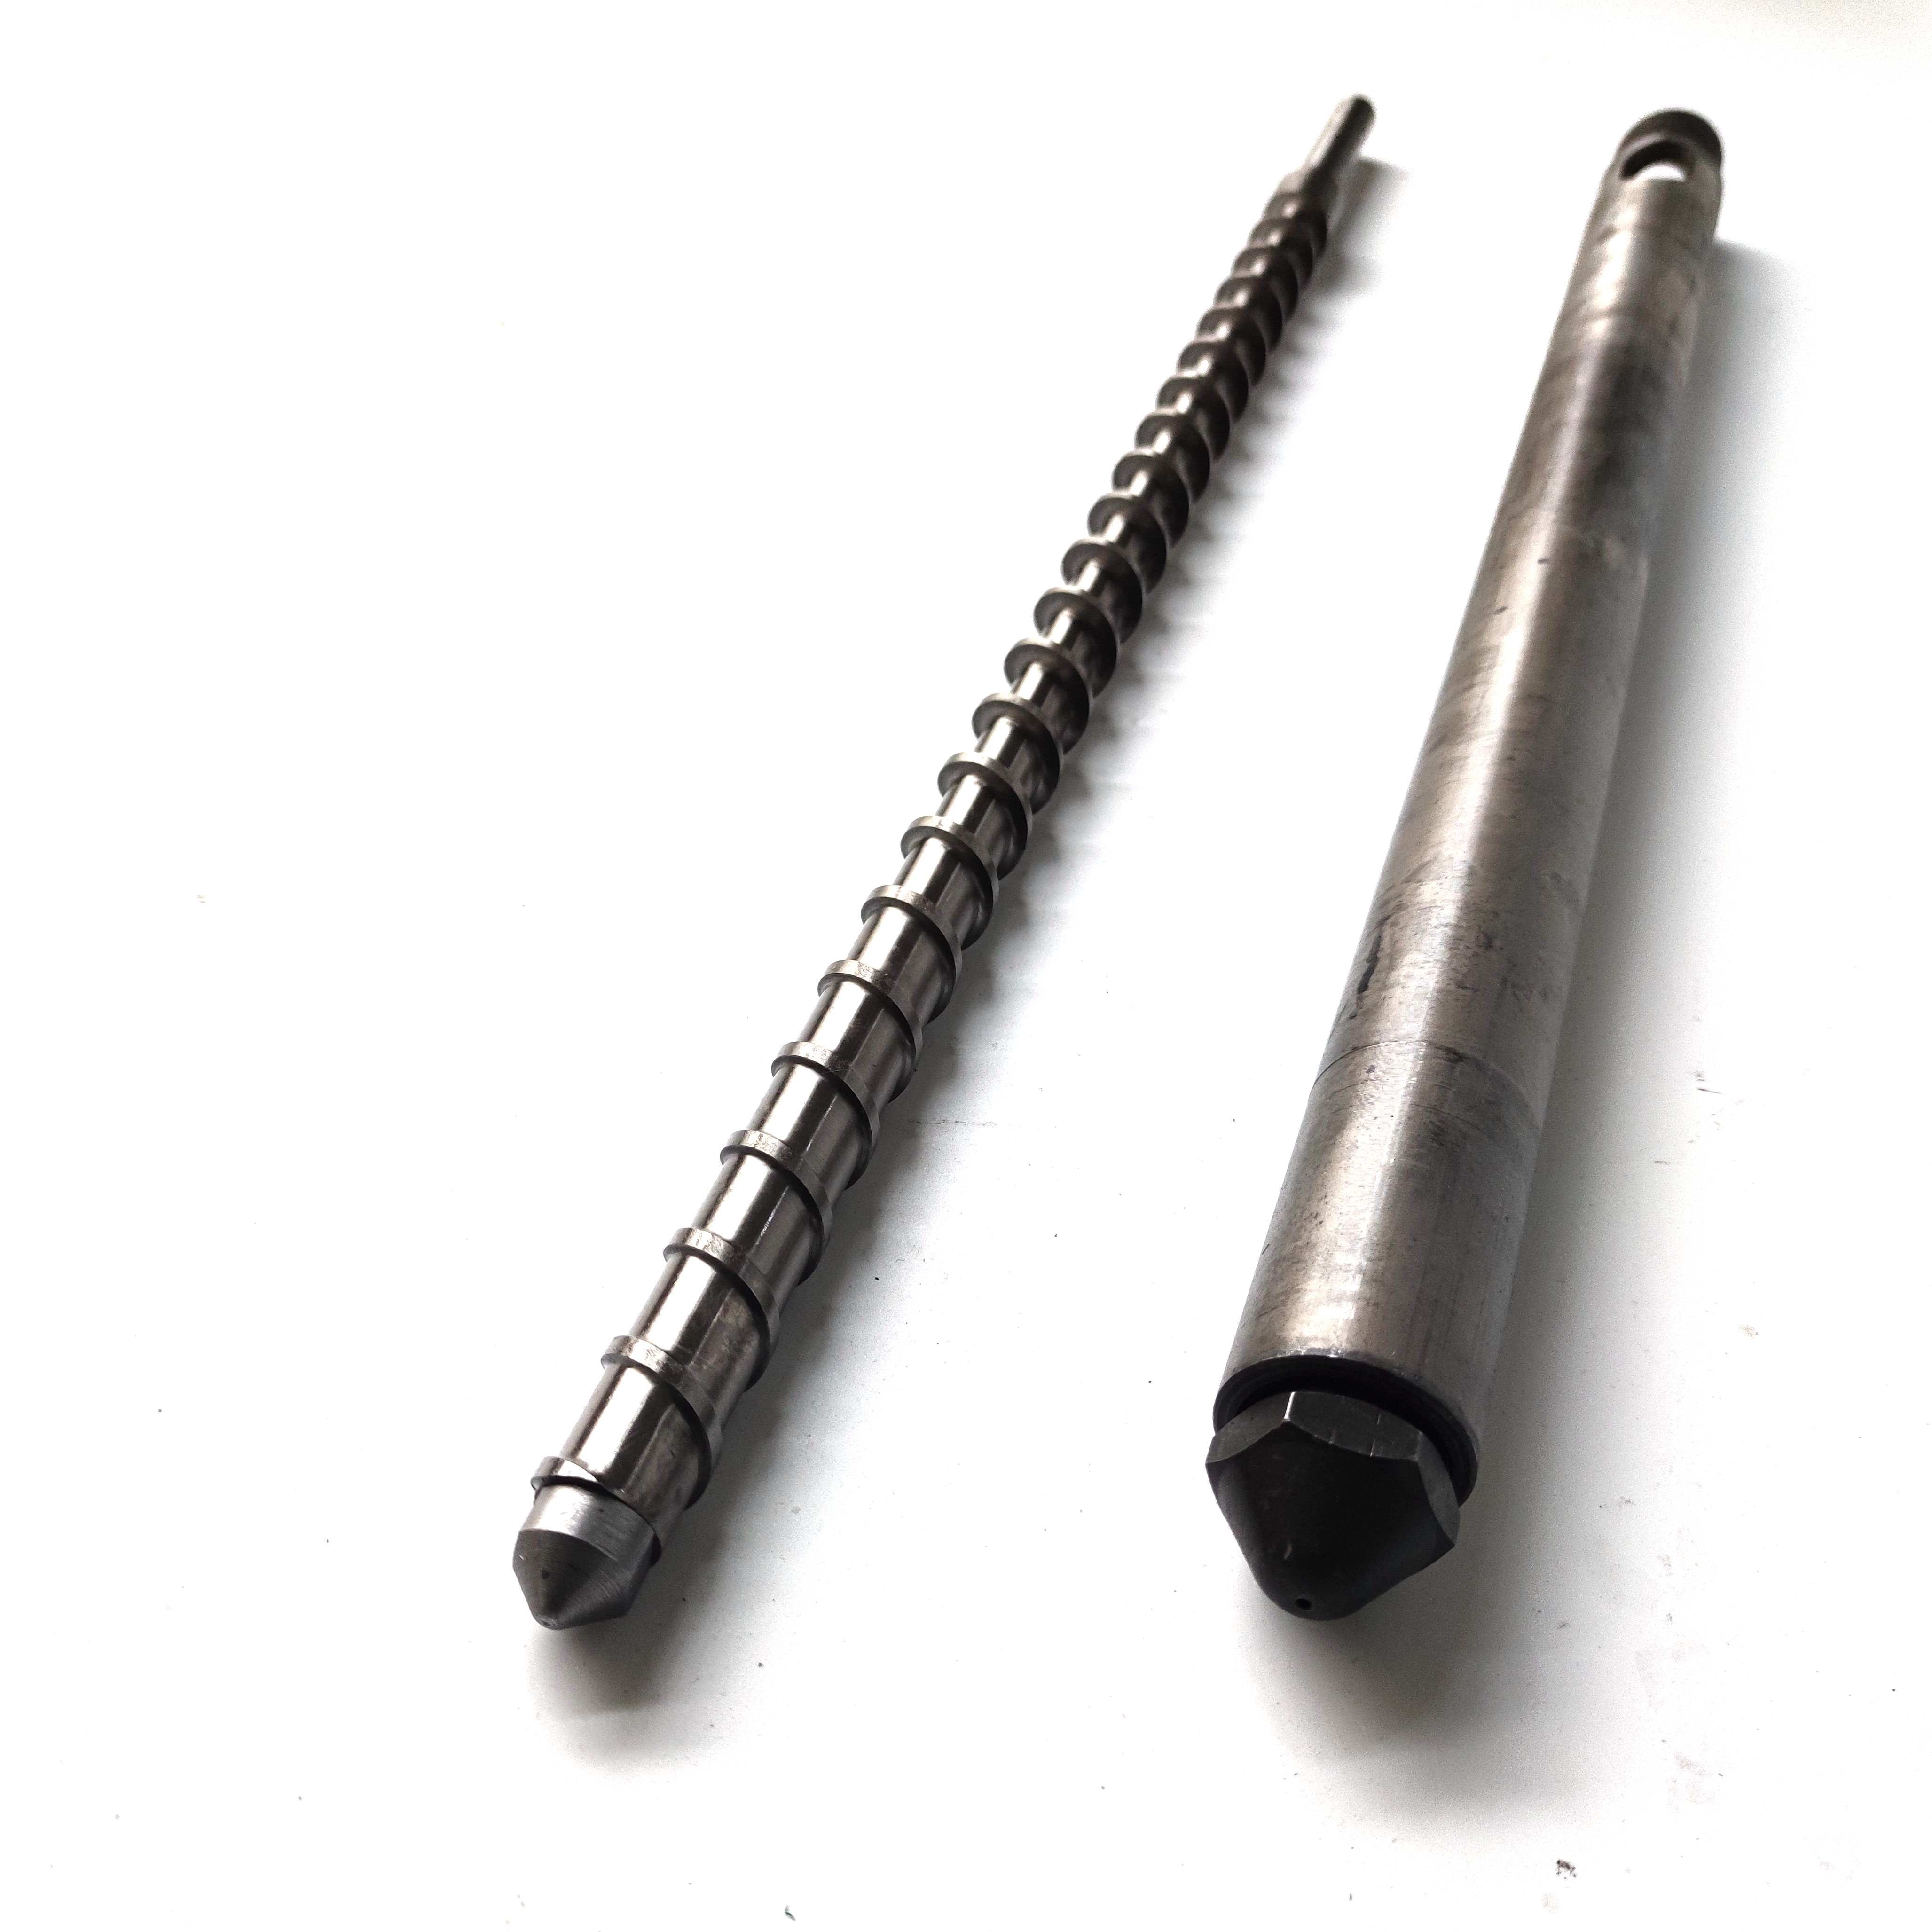 30mm Diameter Injection/Extrusion Screw Kit for Precious Plastic Project Screw, Barrel, Nozzle and Heaters